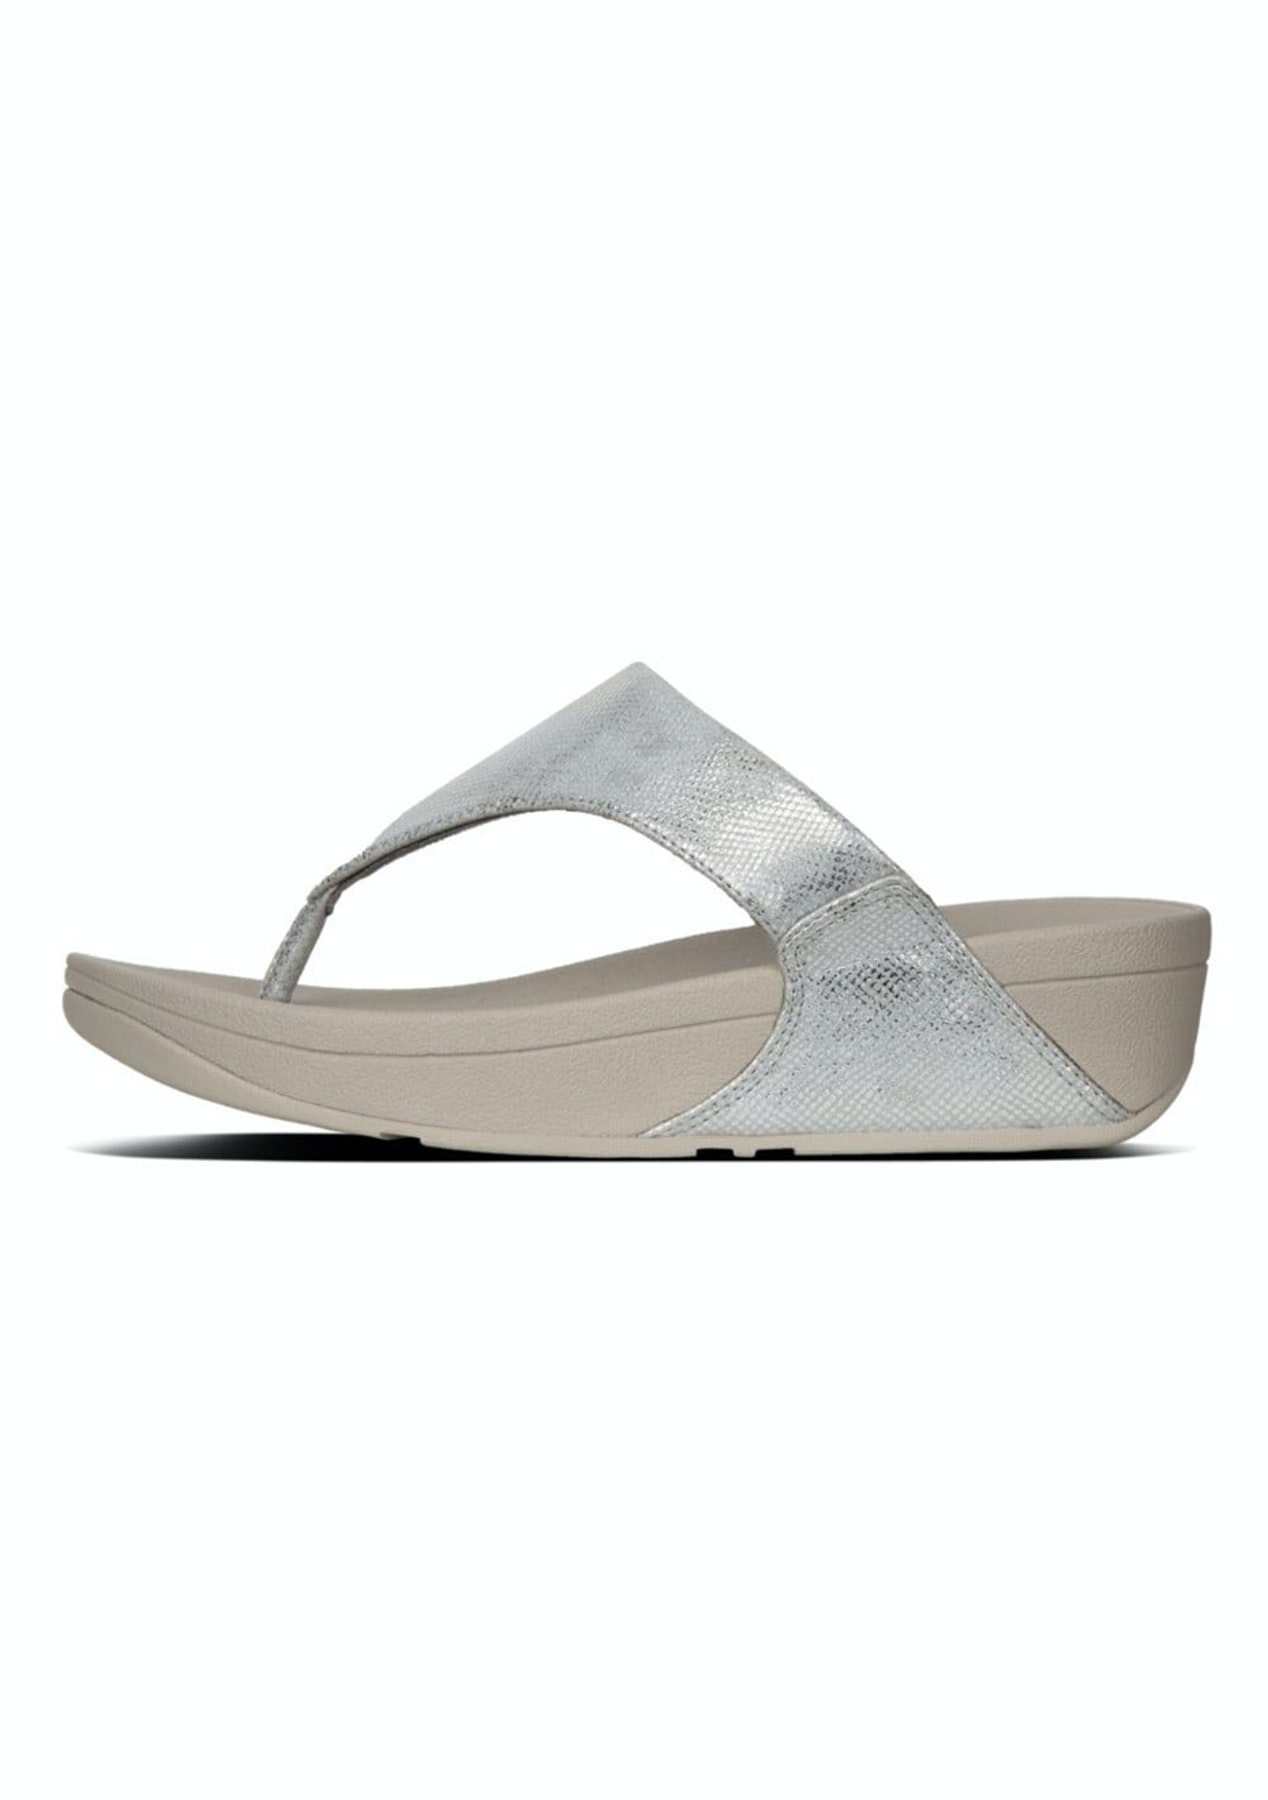 891308f34 Fit Flop - Lulu Toe-Thong Sandals -Silver Shimmer-Print - Fit Flop ...